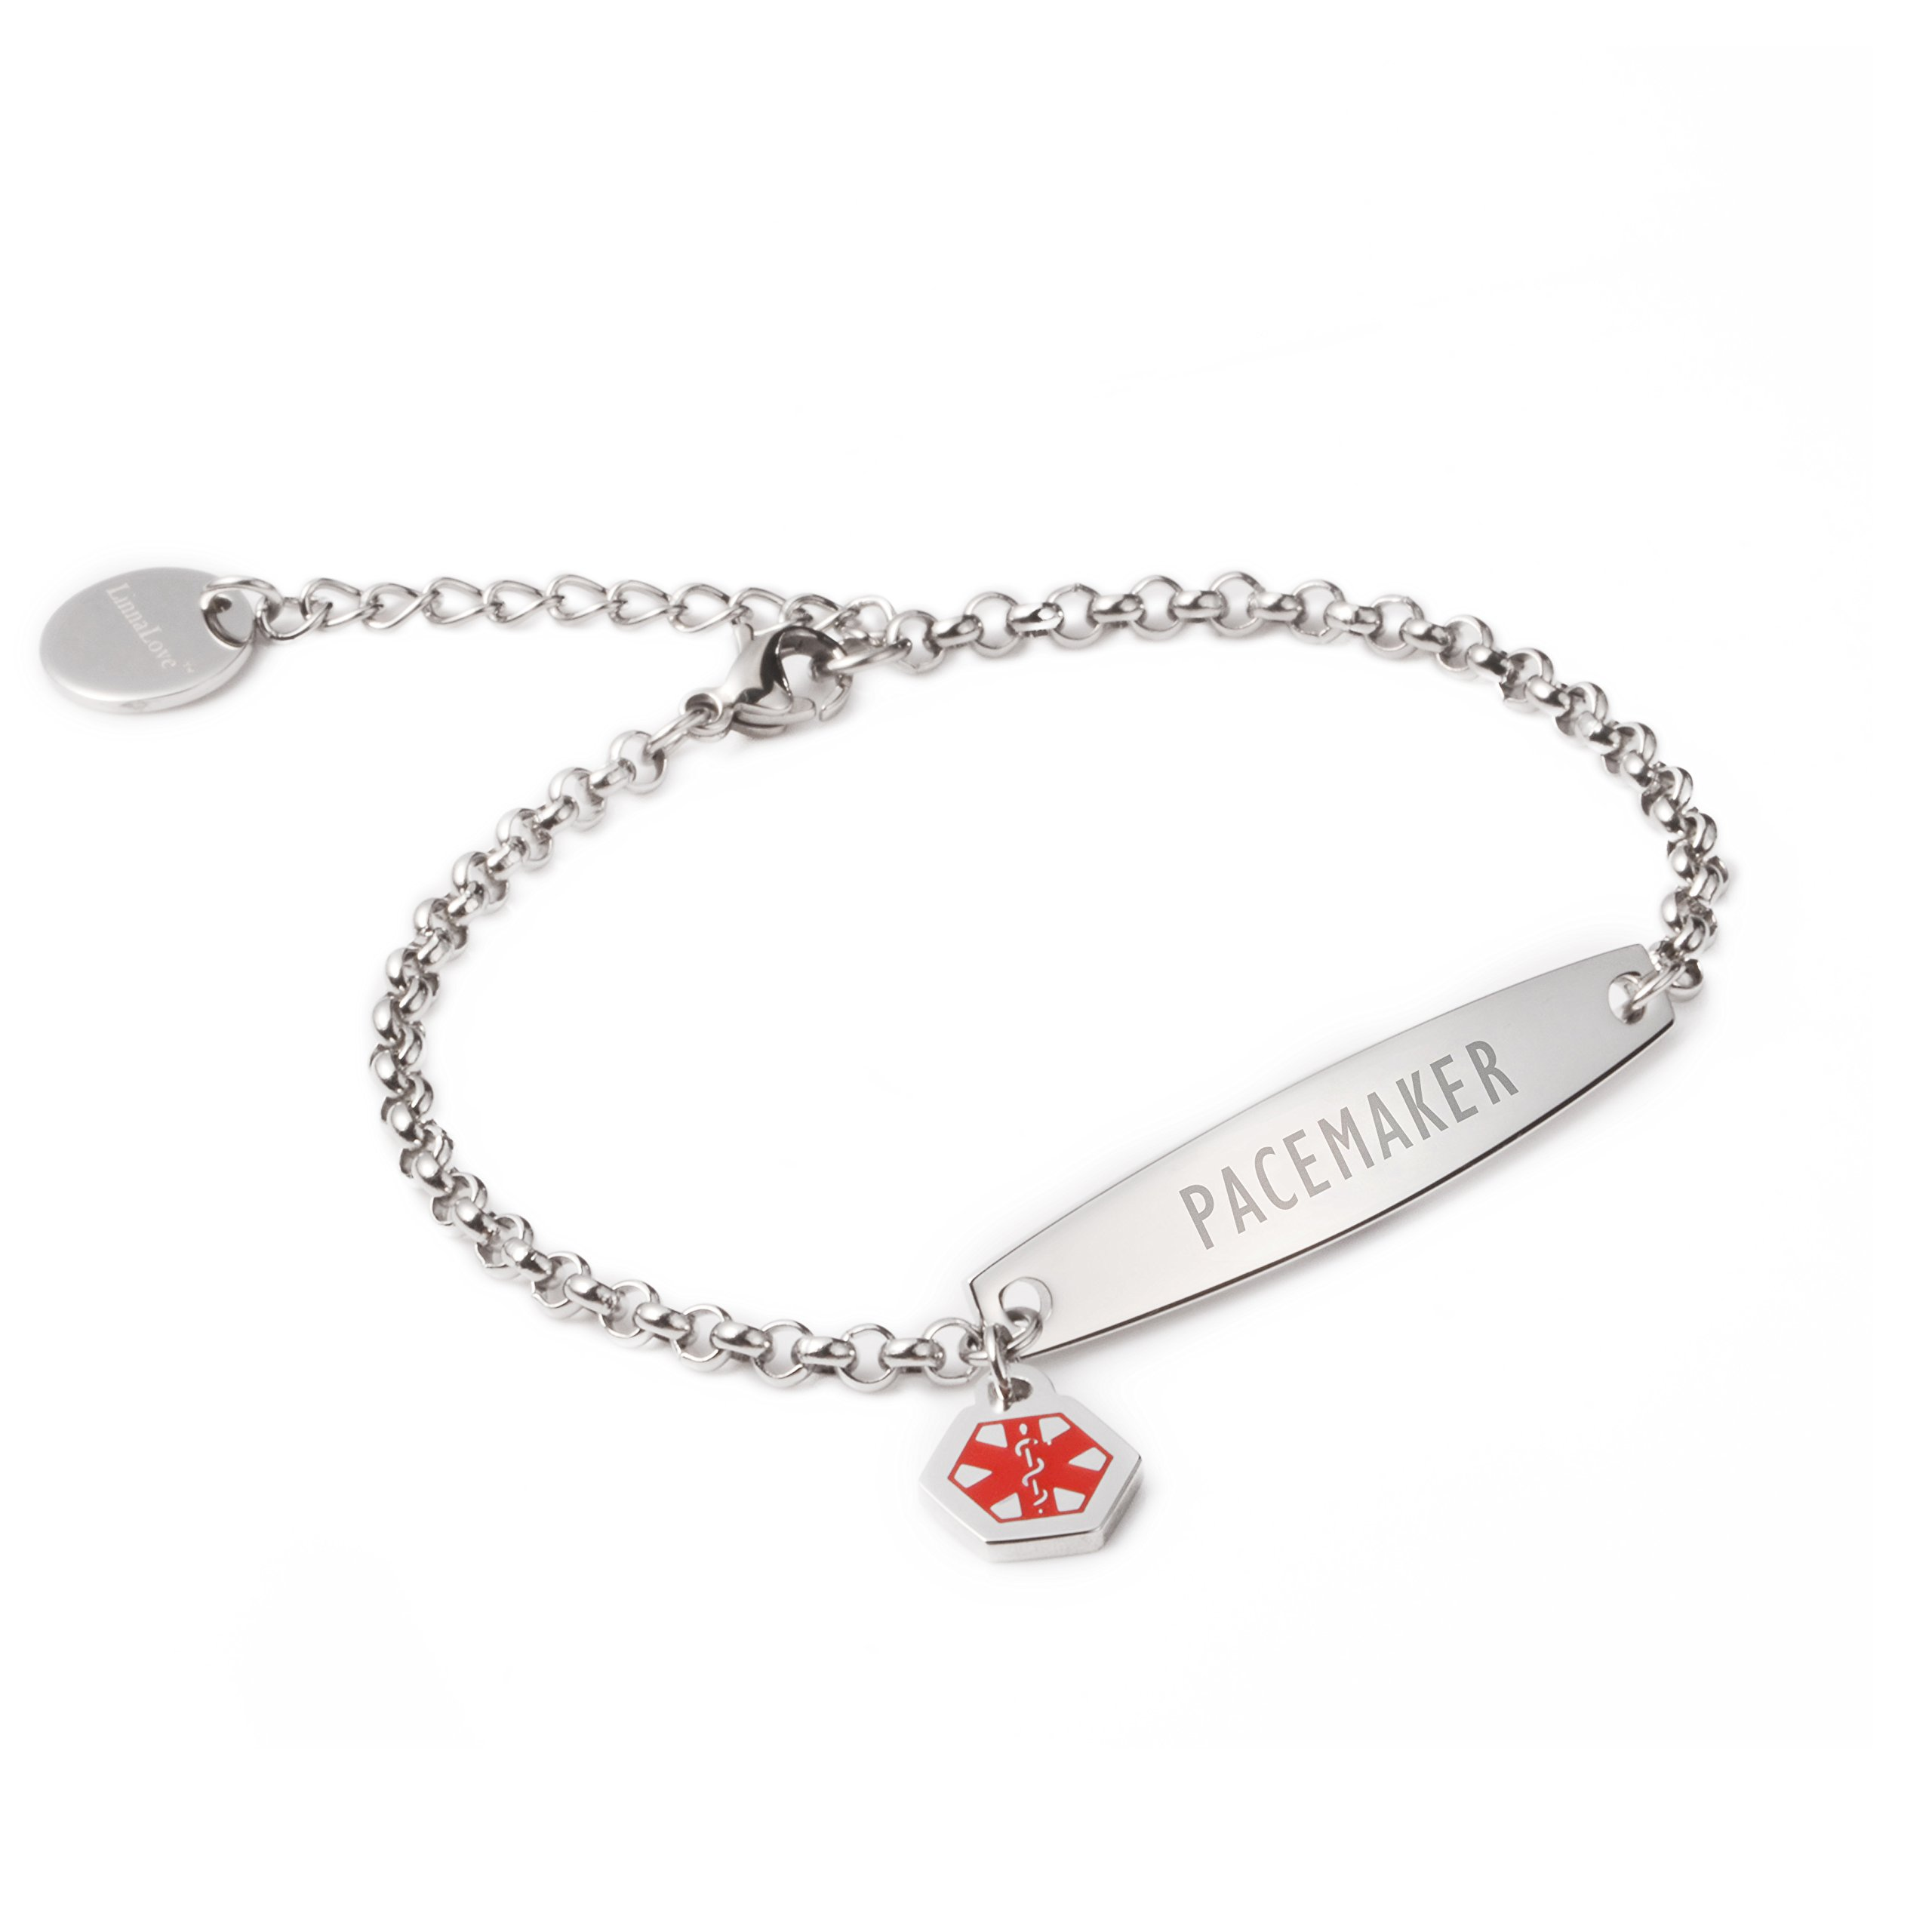 linnalove-Pre-Engraved Simple Rolo Chain Medical id Bracelet for Women & Girl-PACEMAKER